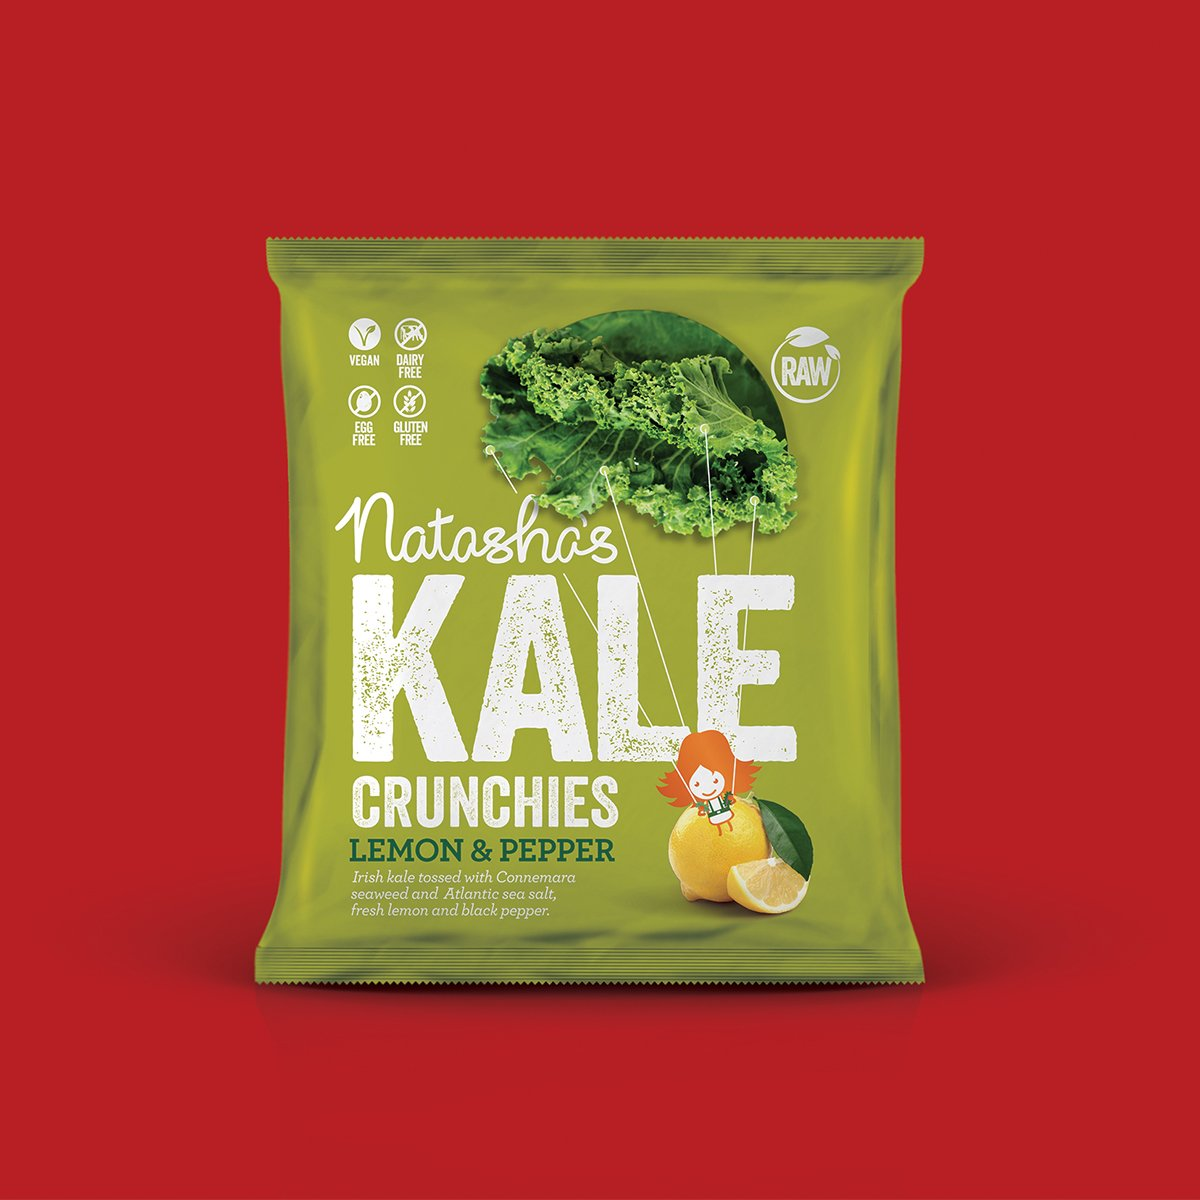 Natashas Kale branding packaging